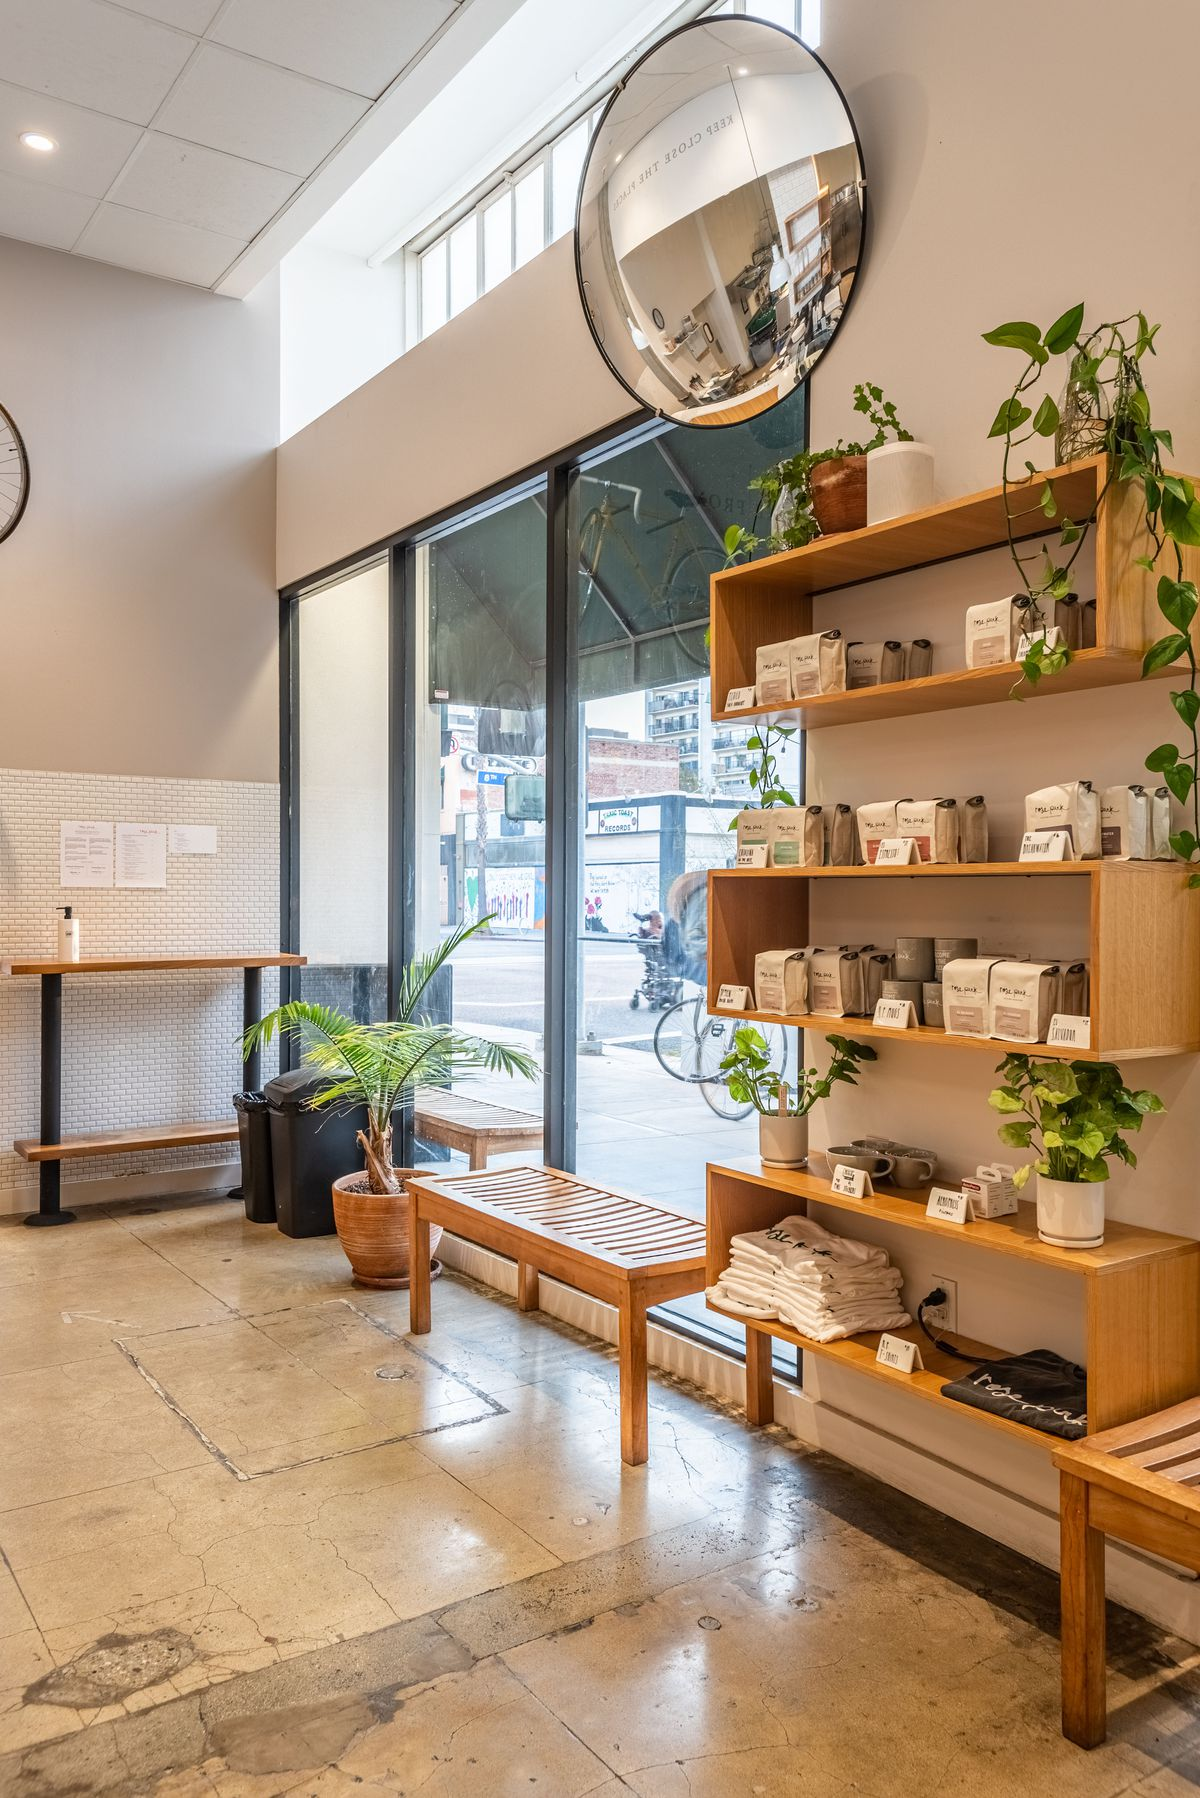 Seating, plants, and coffee bean bags at a new coffee shop.